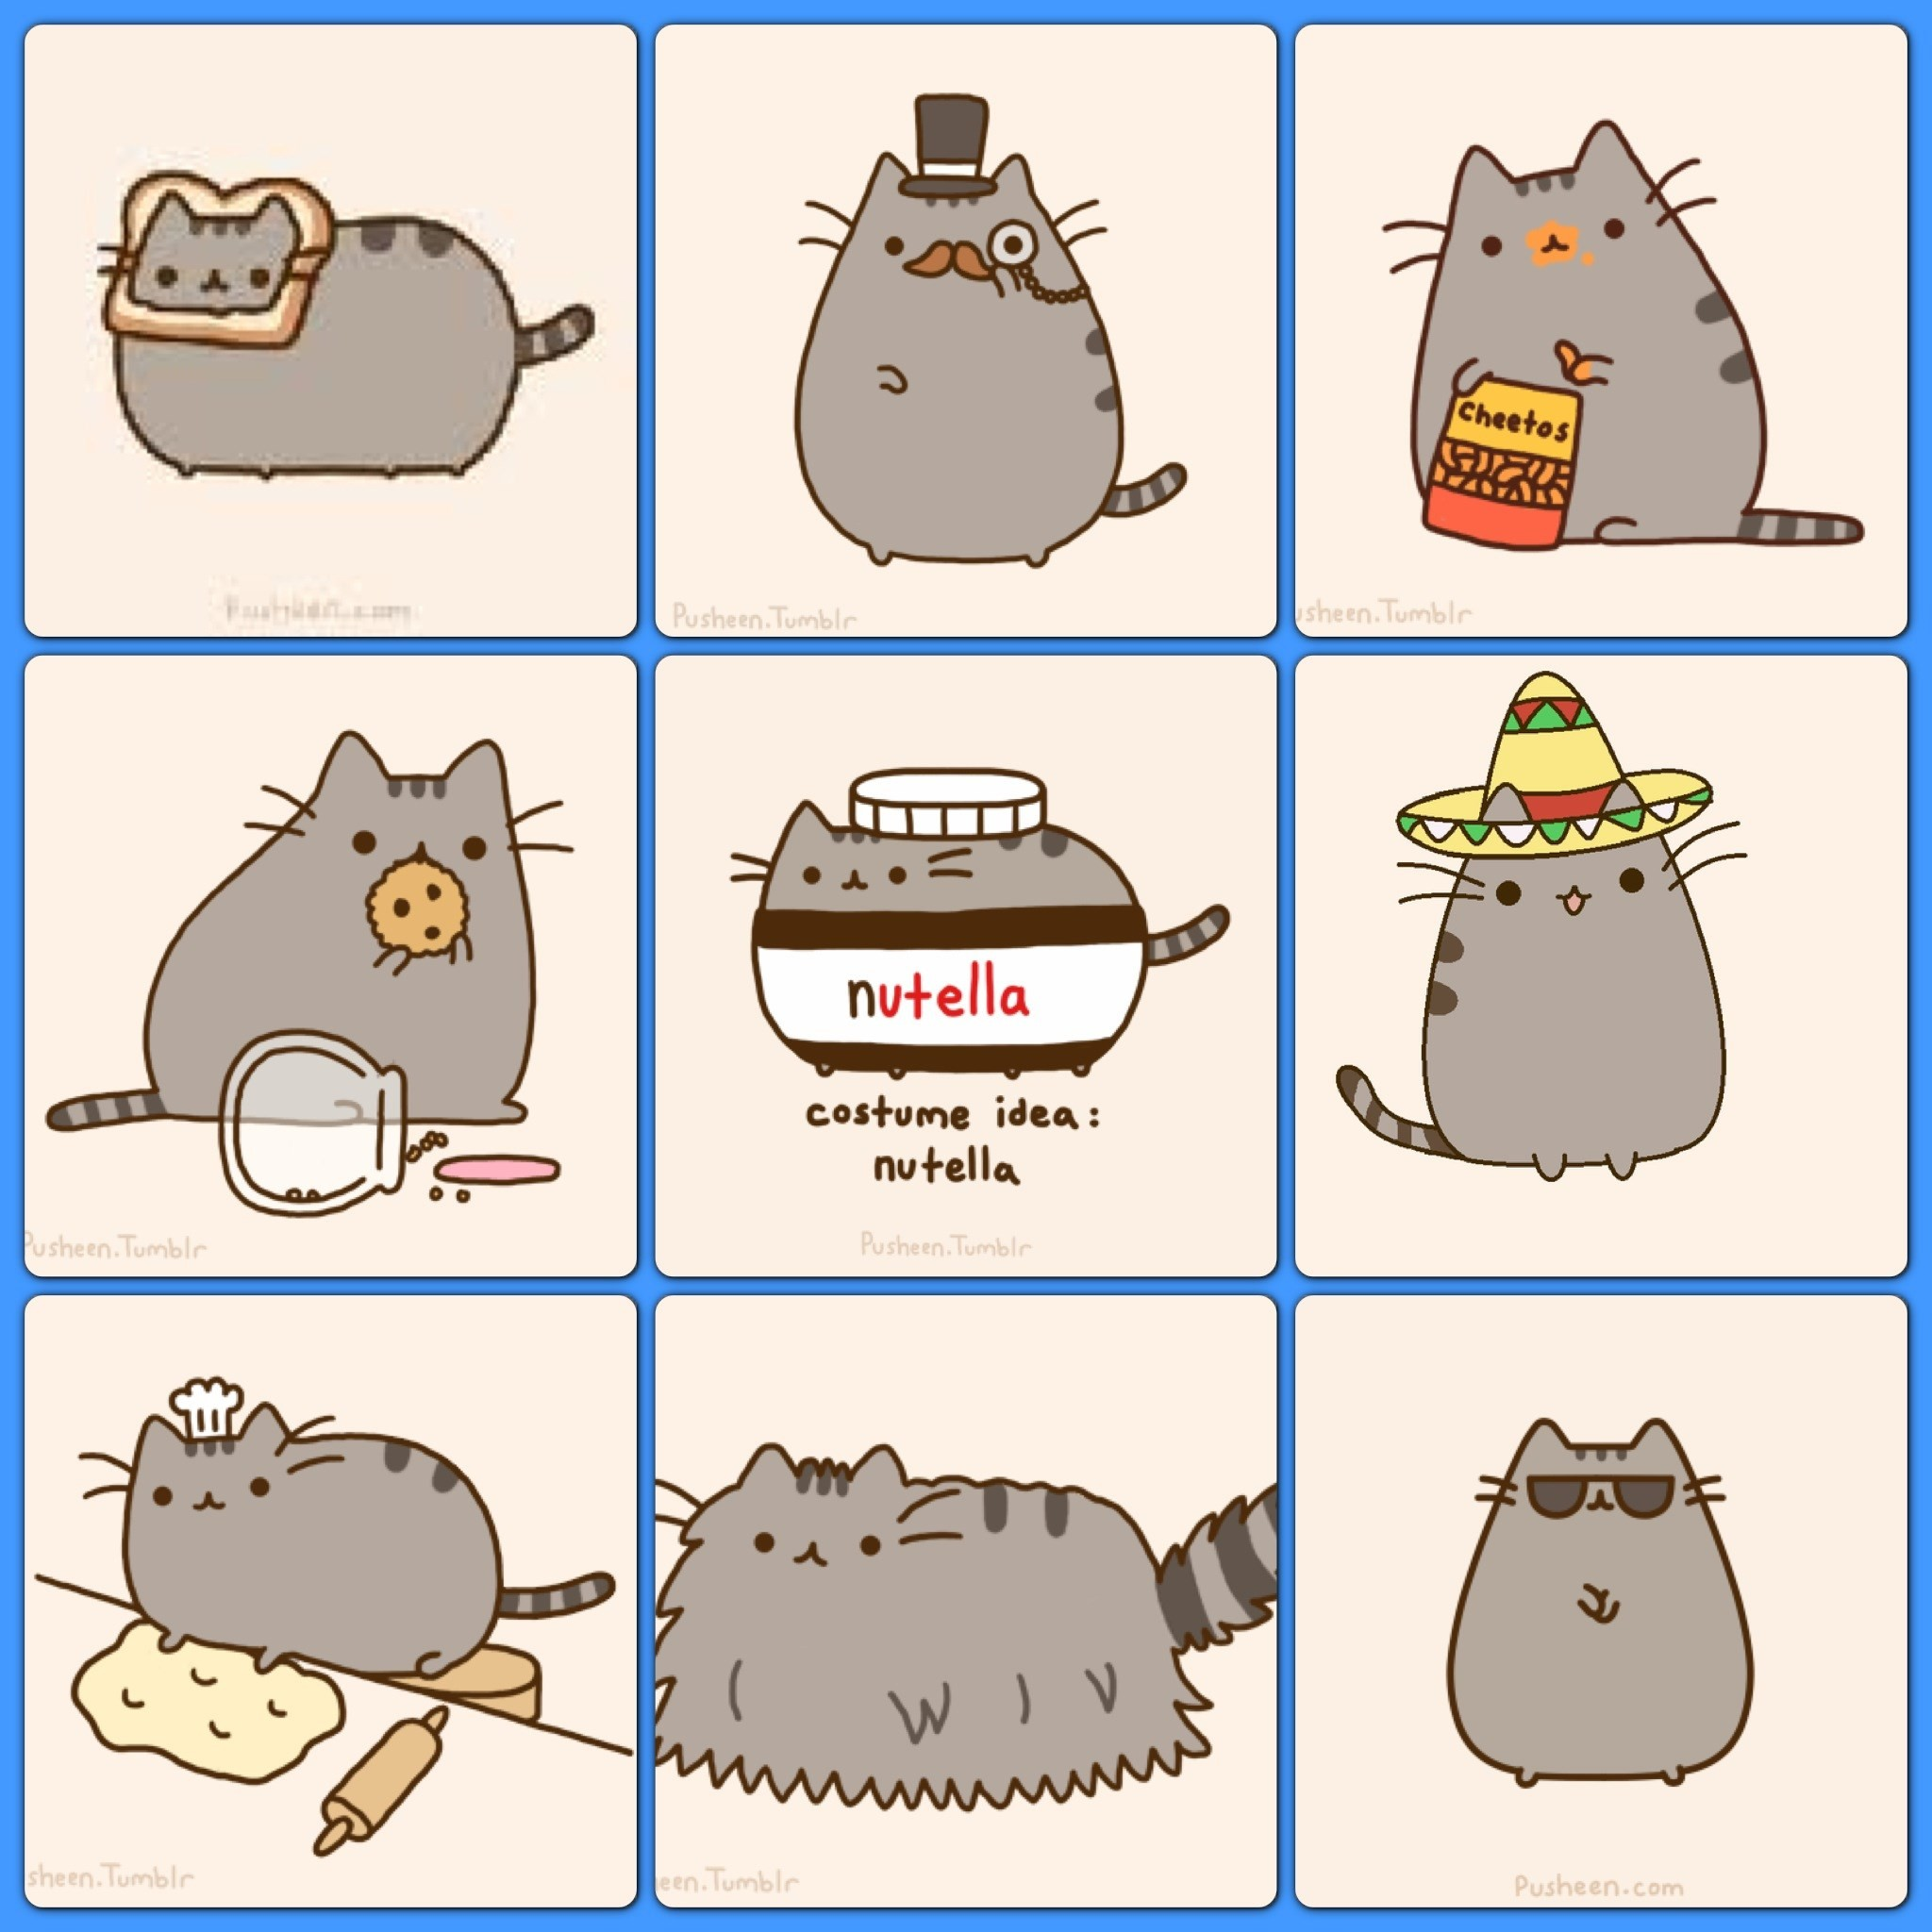 63 Pusheen Wallpaper For Computer